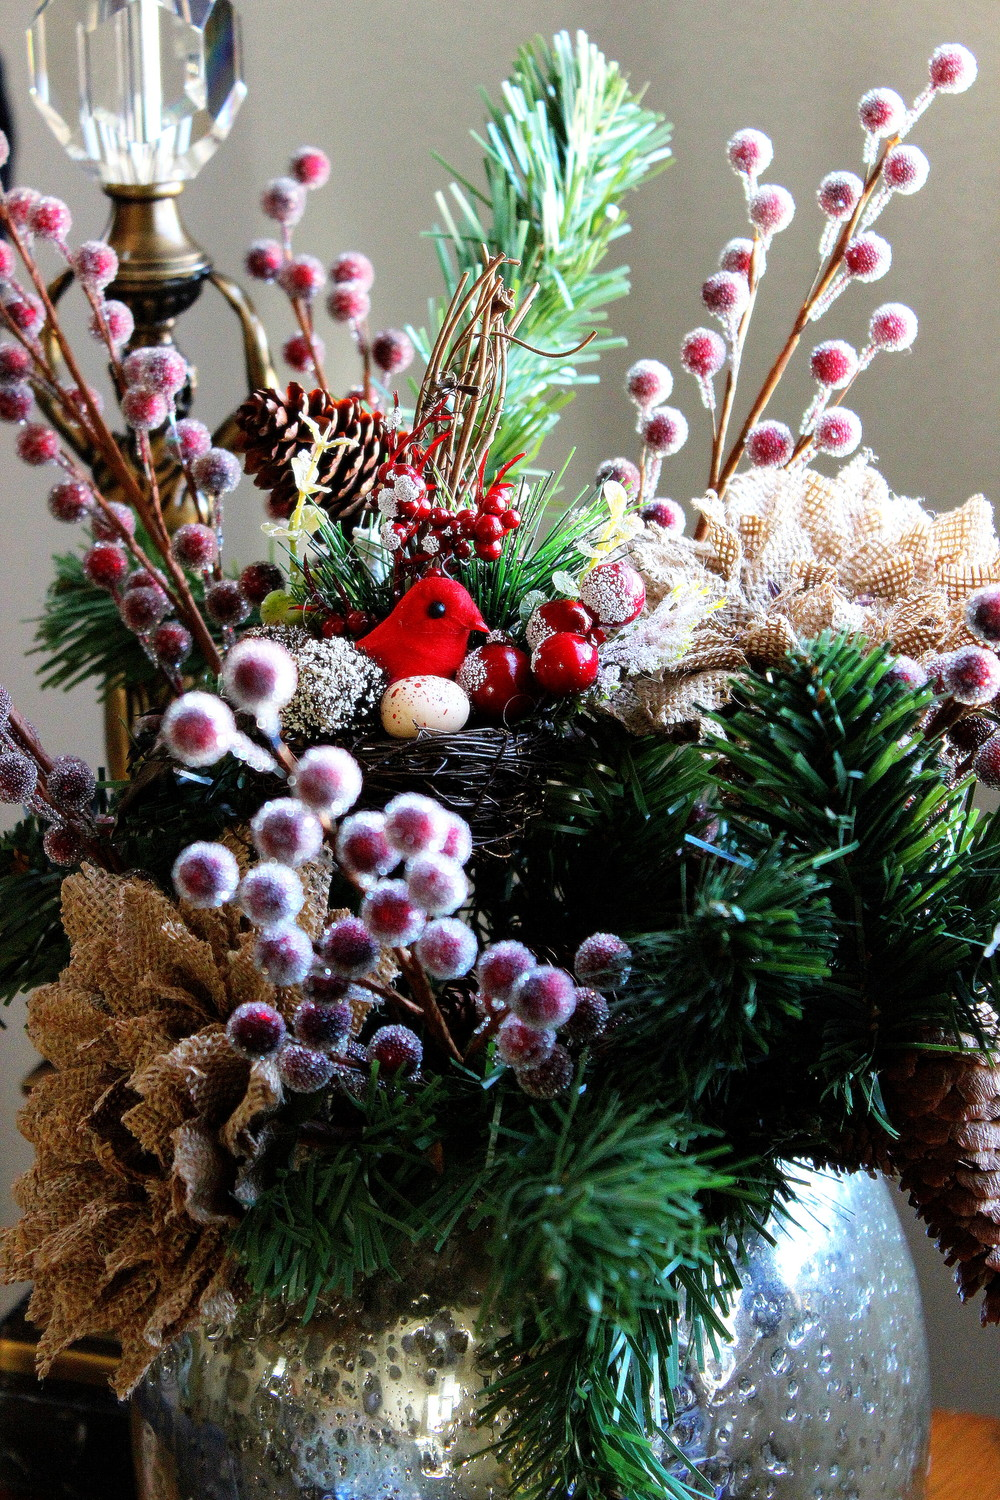 Christmas arrangement created out of flowers purchased at Hobby Lobby